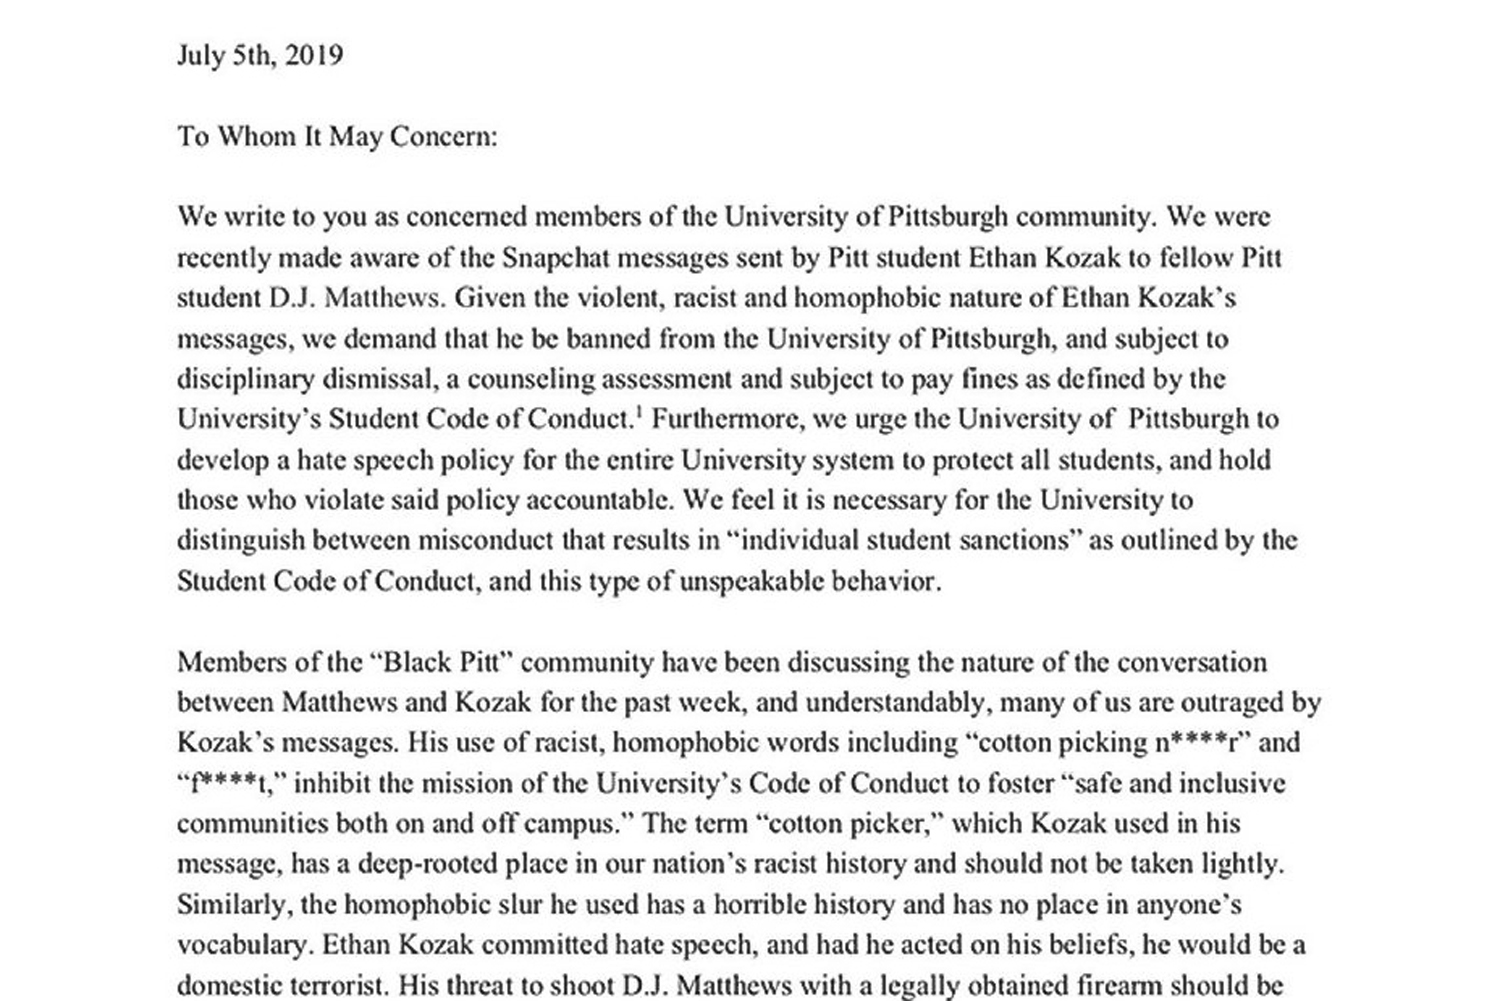 The Pitt student leaders' letter to administrators calling for the expulsion of Ethan Kozak.